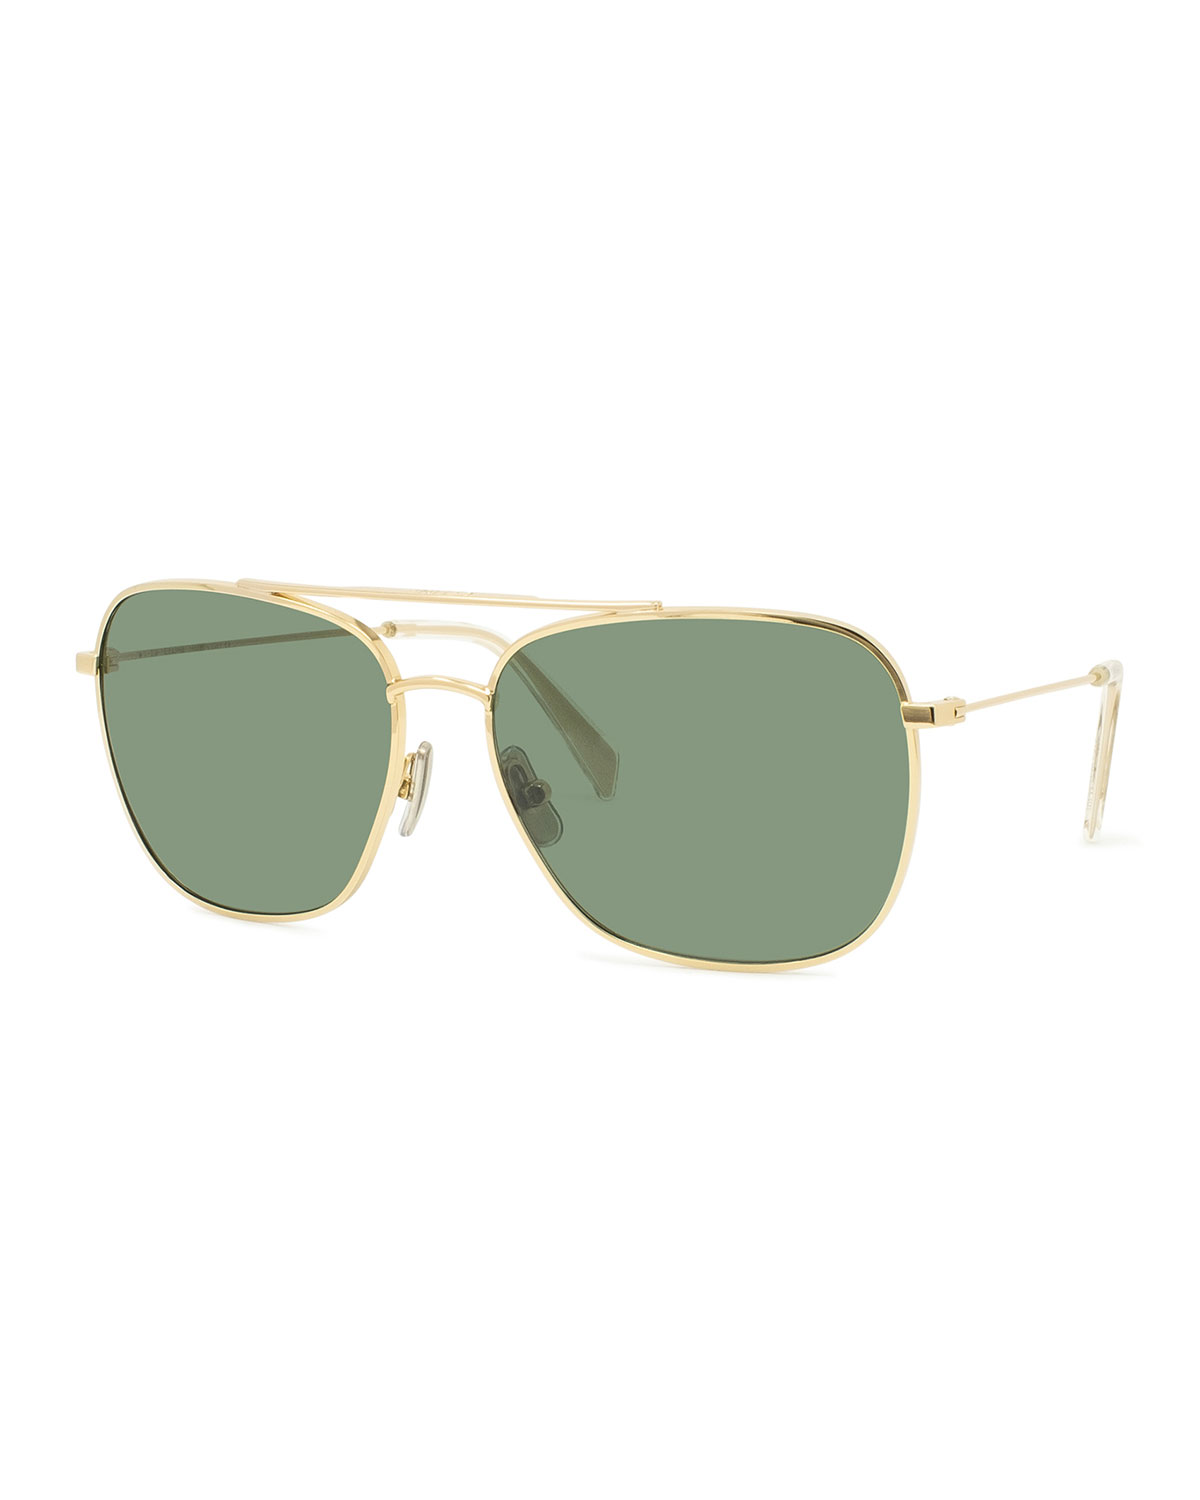 Celine Sunglasses MEN'S METAL AVIATOR SUNGLASSES, GOLD